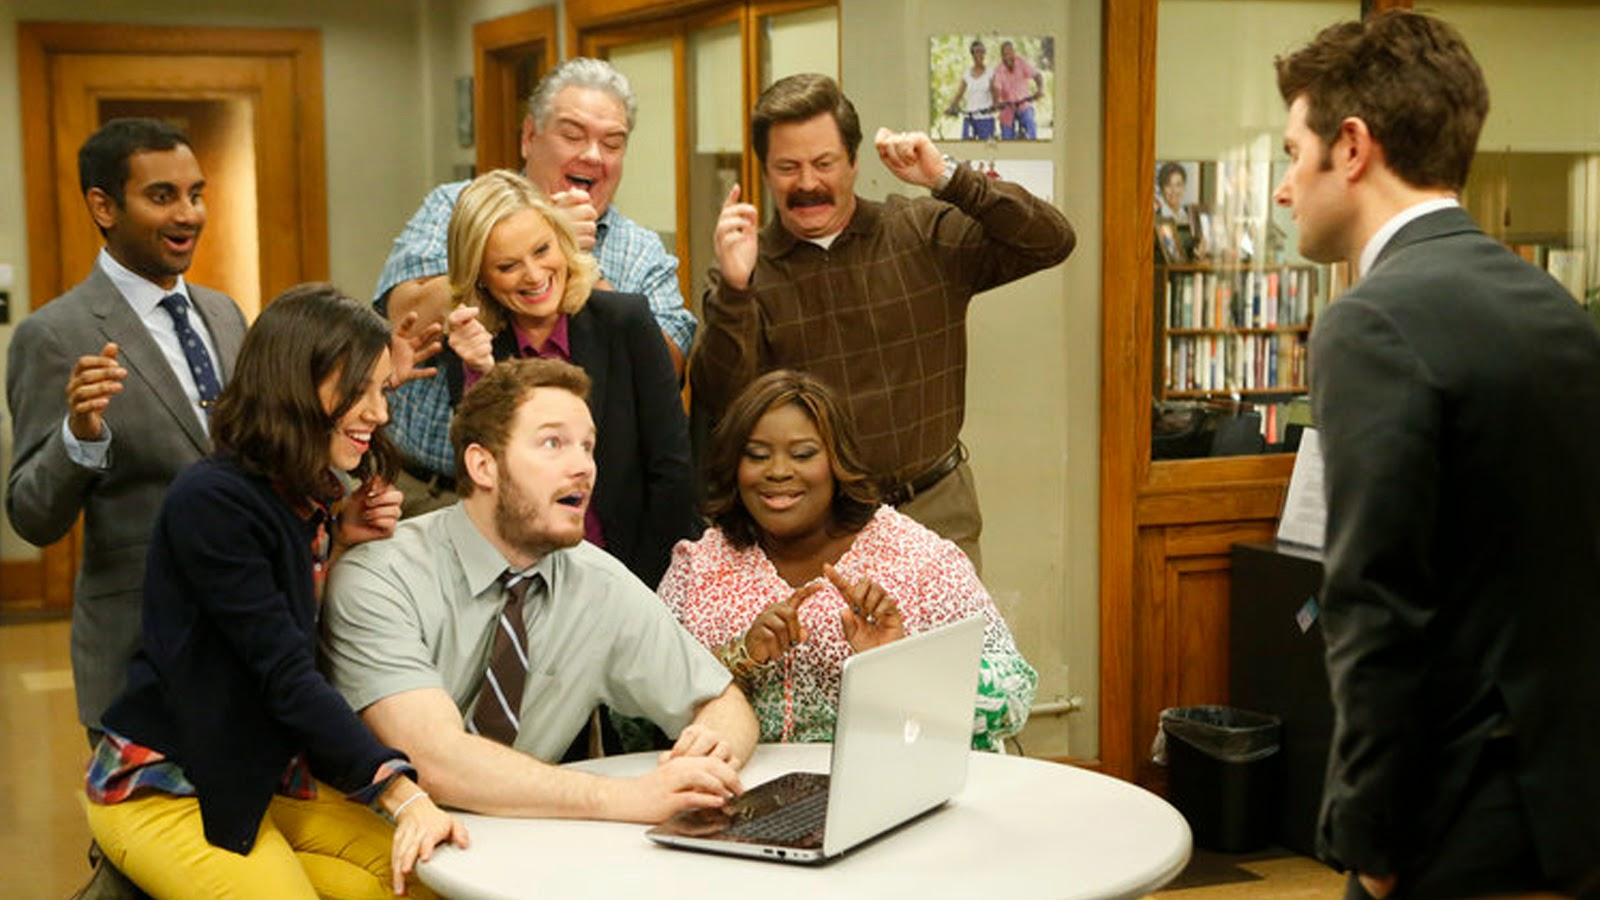 Los protagonistas de 'Parks and recreation'